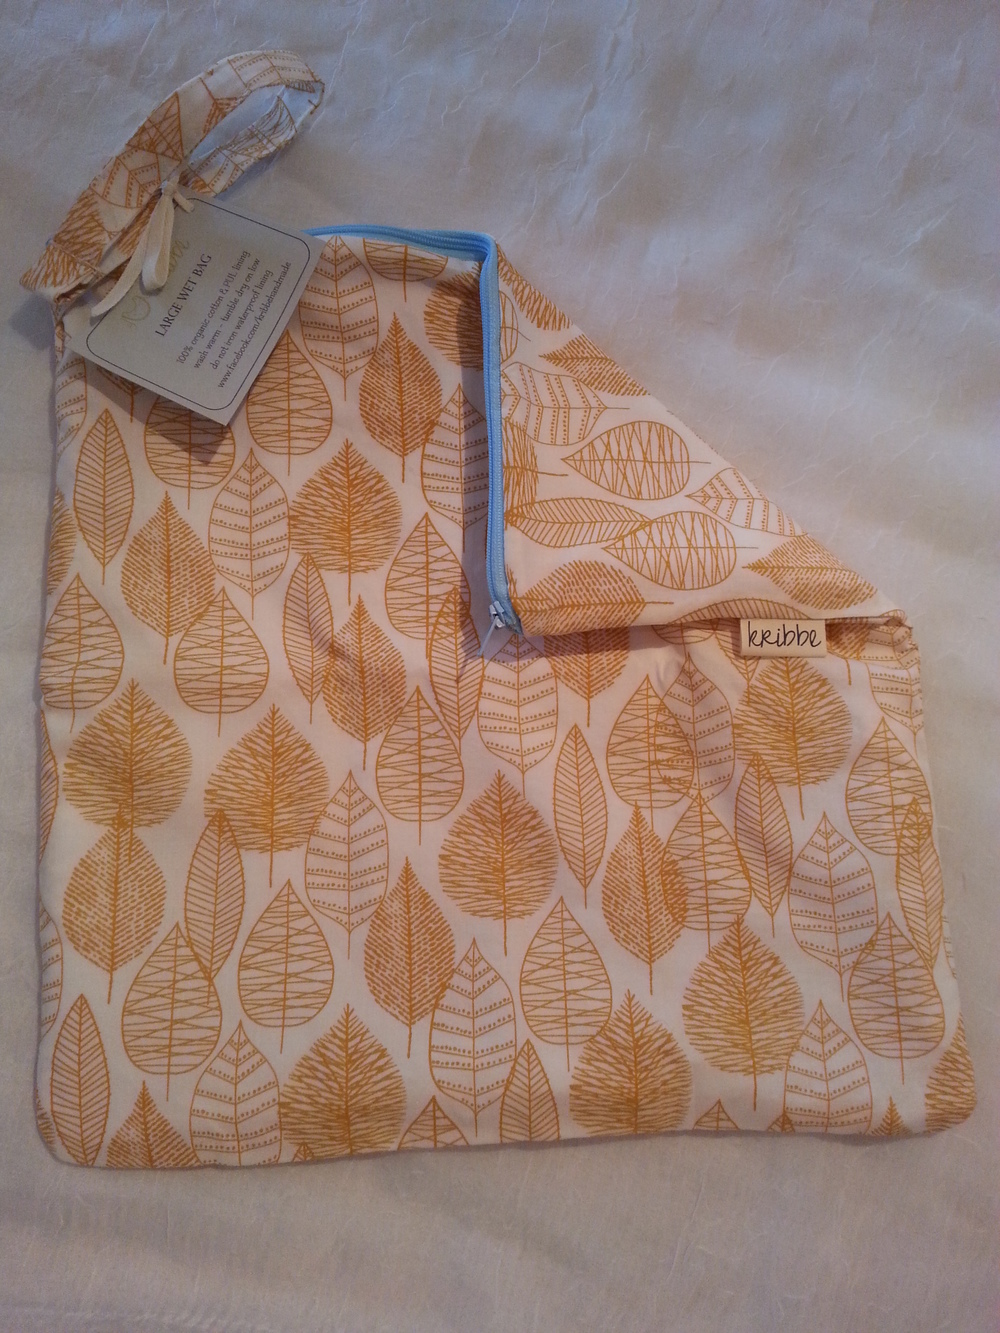 Kribbe Organic Travel Wet bag size Large   Locally Handmade   $23.00    Wants 1 PURCHASED